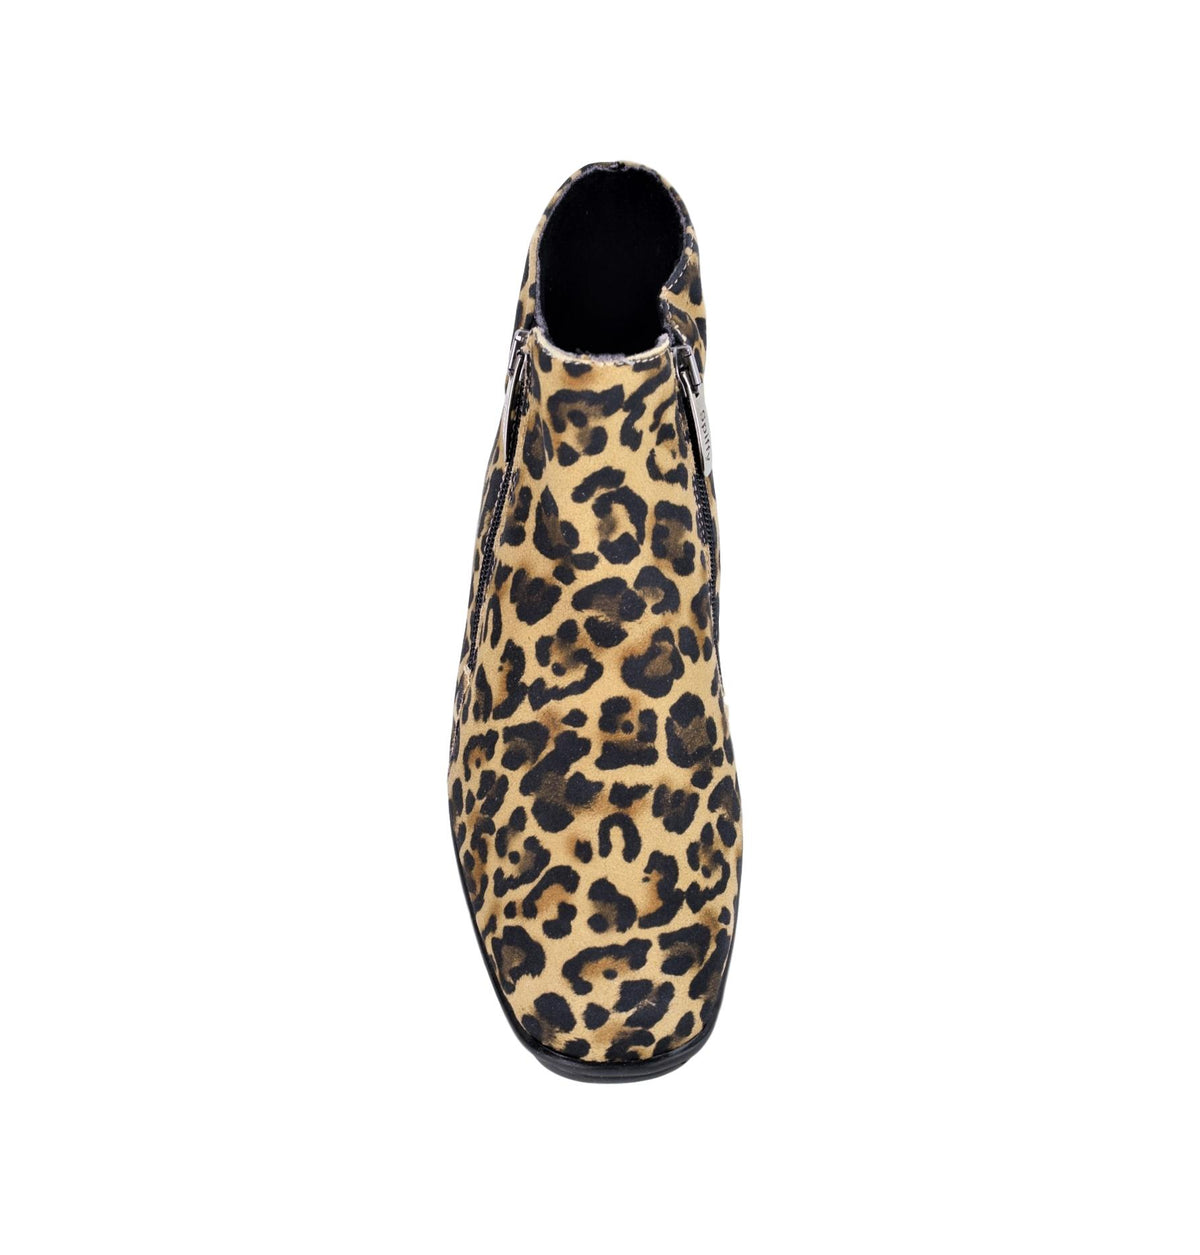 JAGAR - Spiffy Ankle Boots Leopard